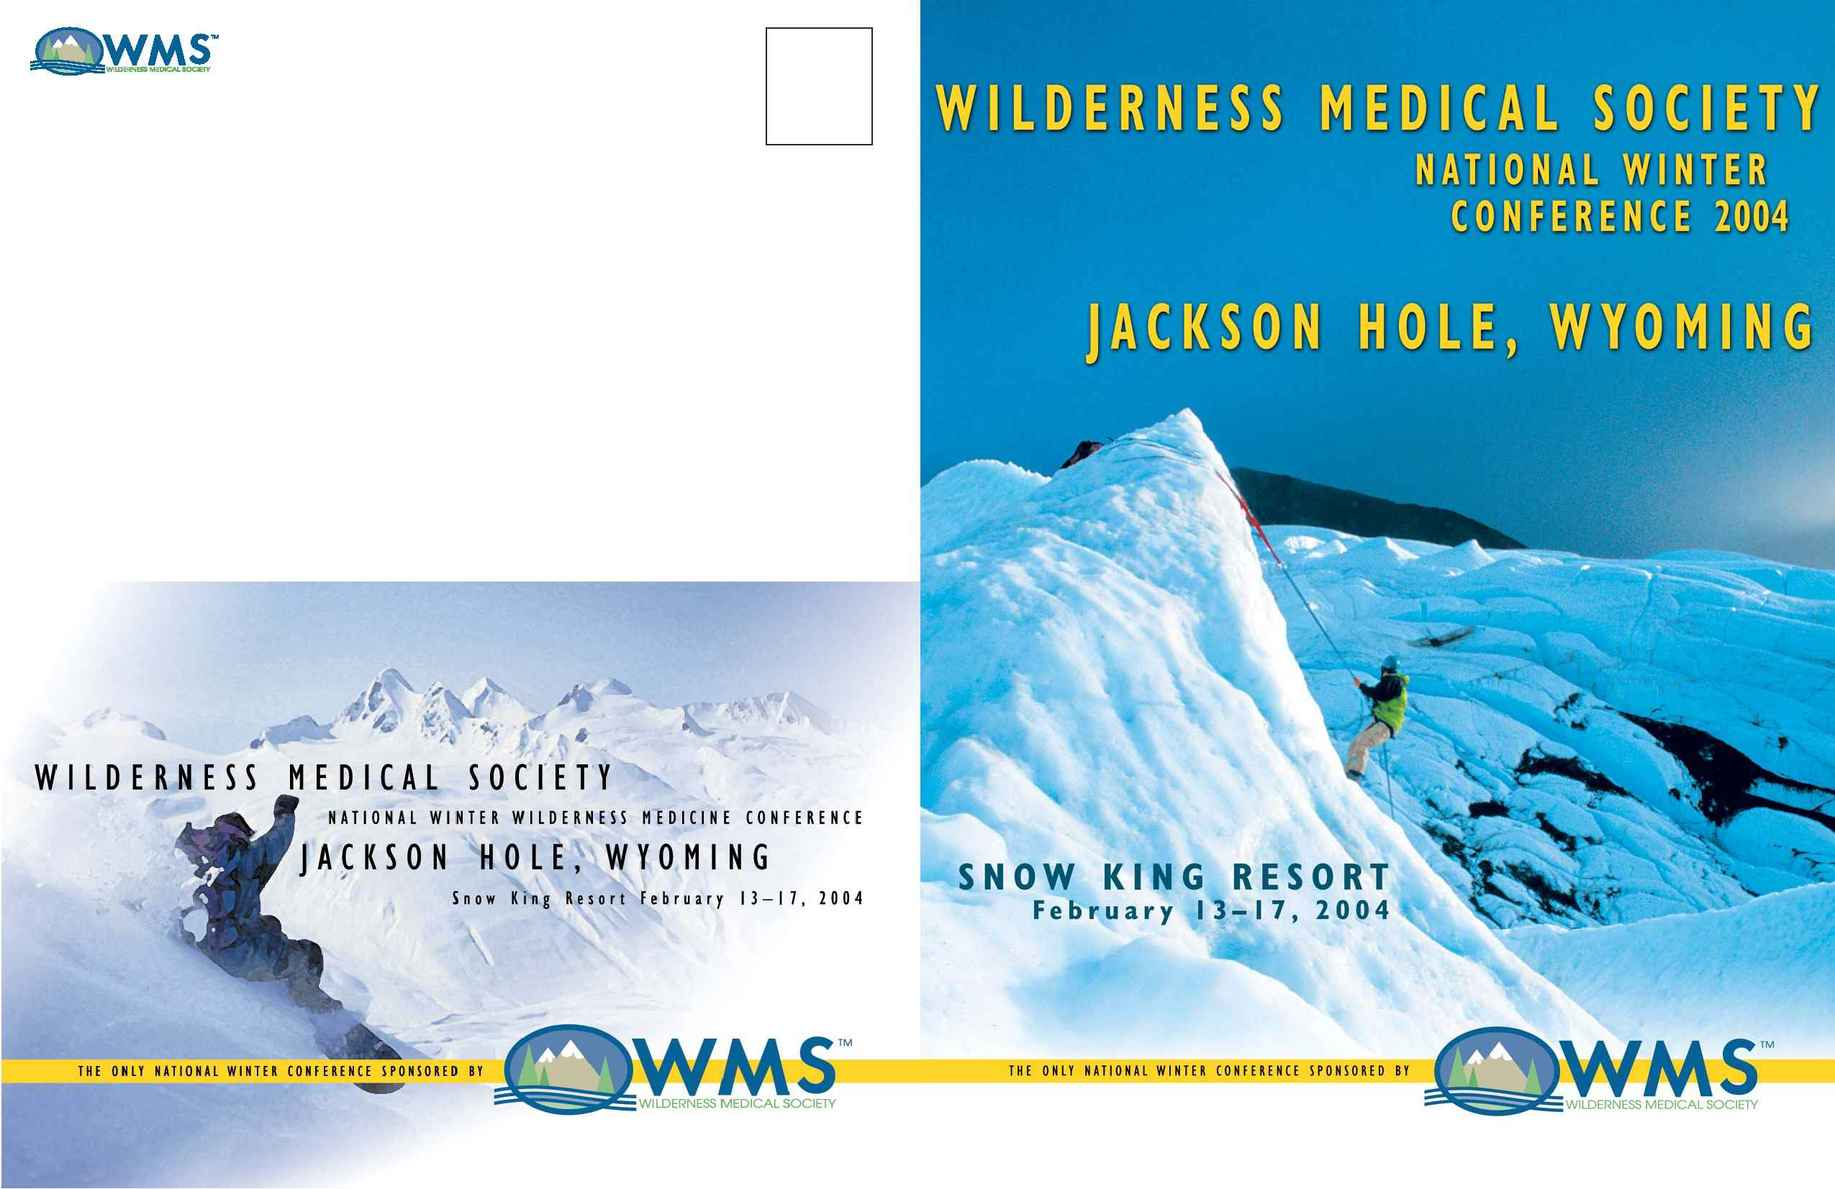 Wilderness Medical Society - jackson hole